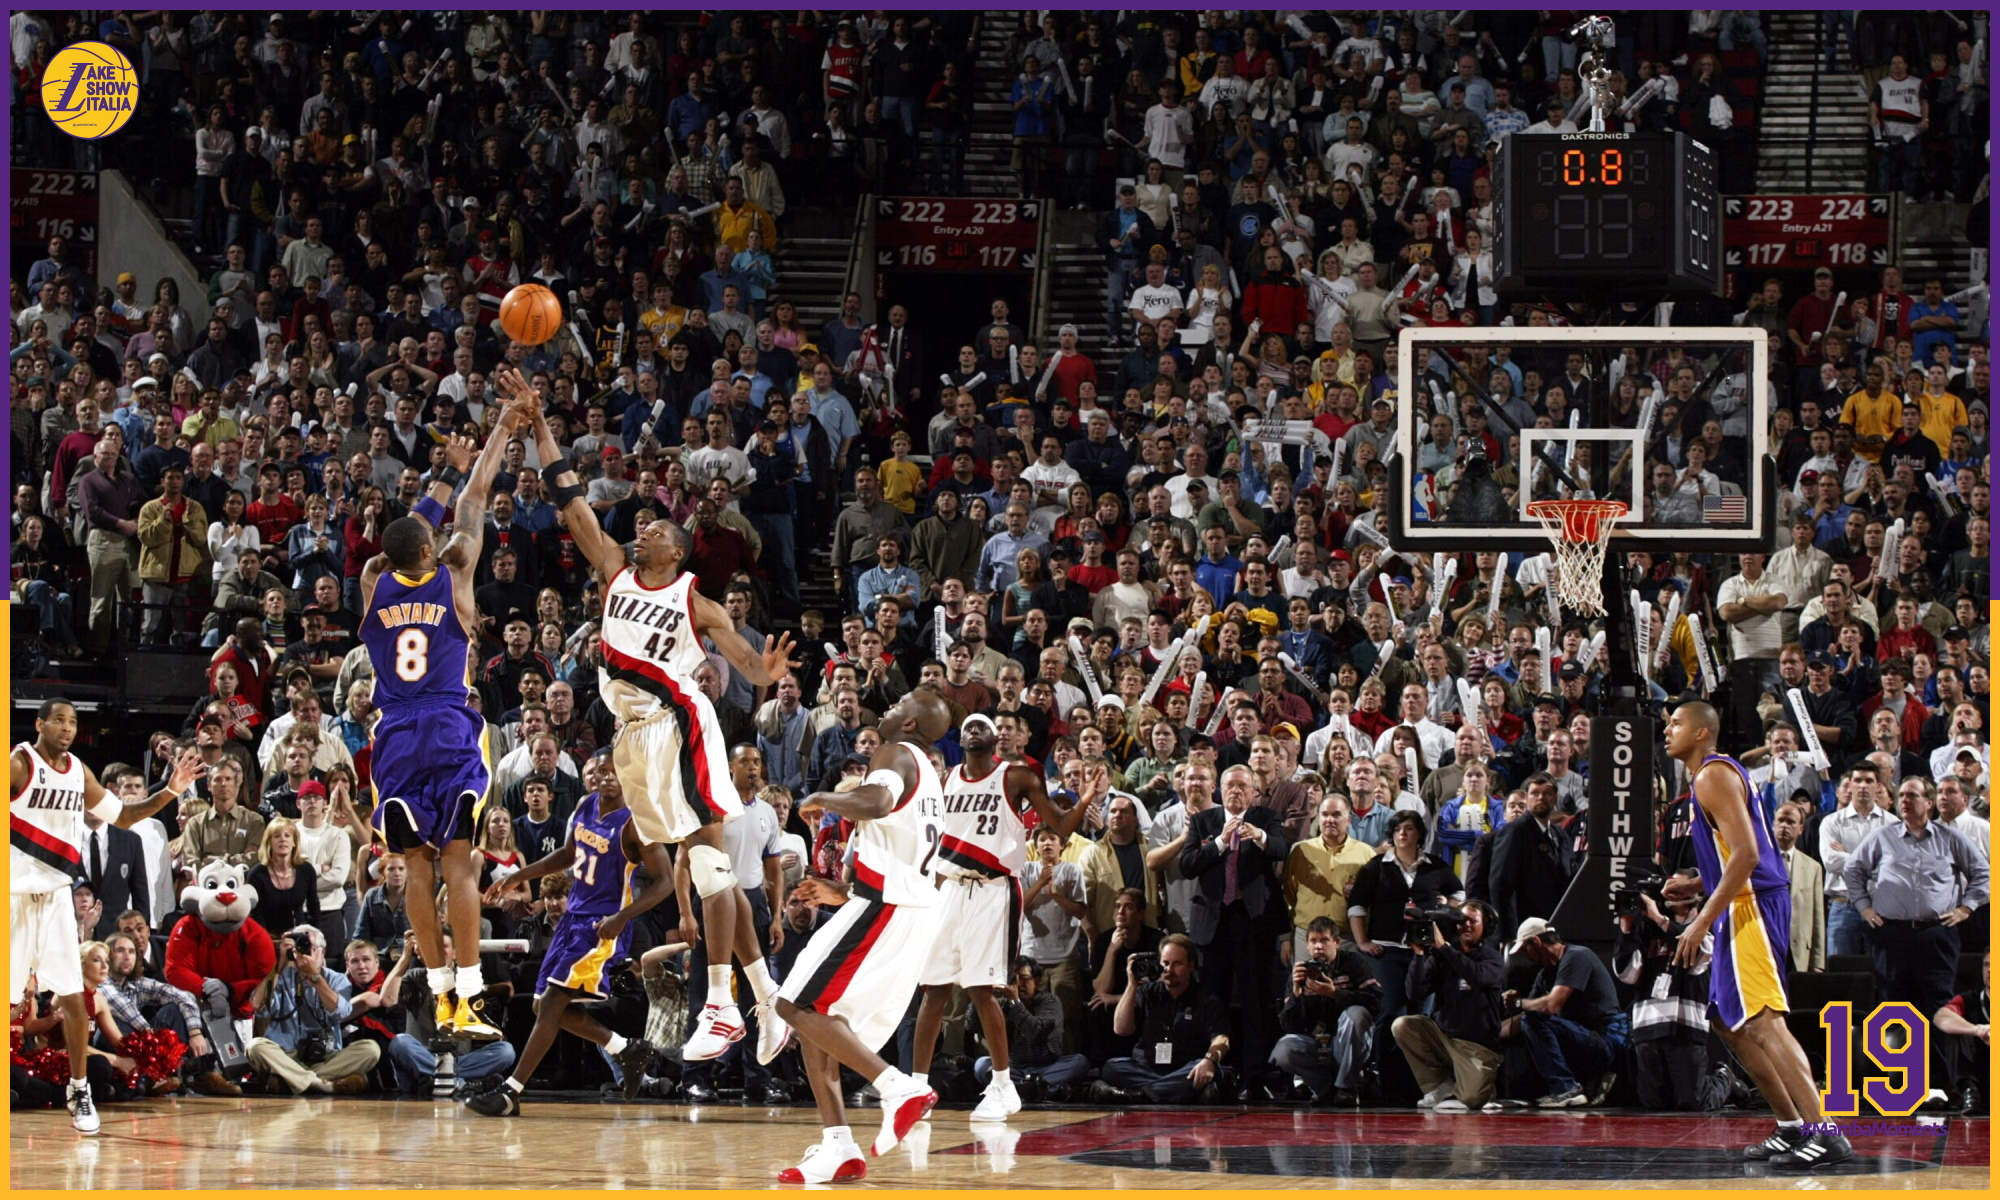 Kobe Bryant sinks a three point shot in the last seconds of a double overtime game against the Los Angeles Lakers Portland Trail Blazers on April 14, 2004 at the Rose Garden Arena in Portland, Oregon.